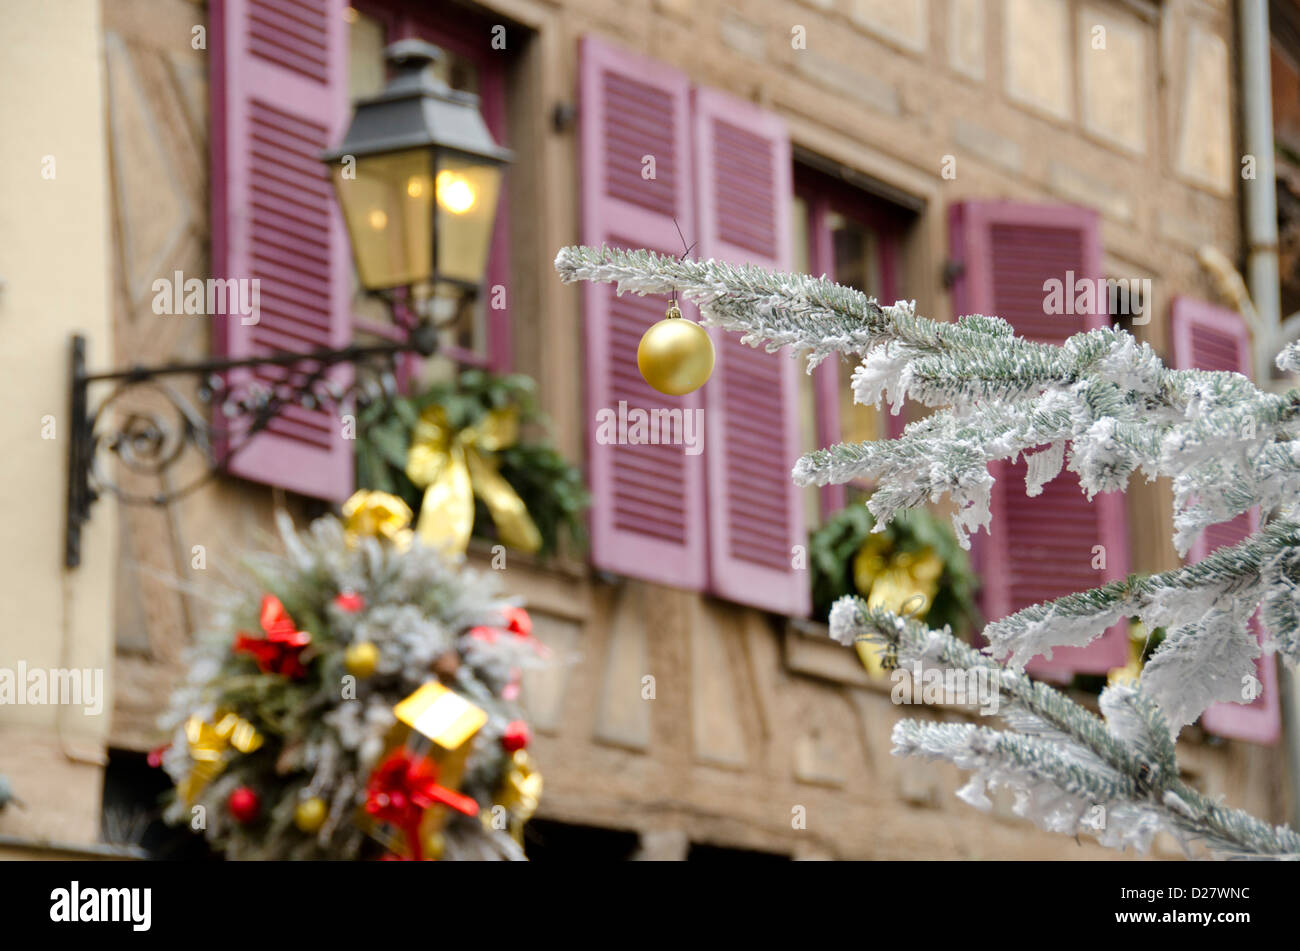 france alsace colmar christmas decorations on typical historic stock photo royalty free. Black Bedroom Furniture Sets. Home Design Ideas